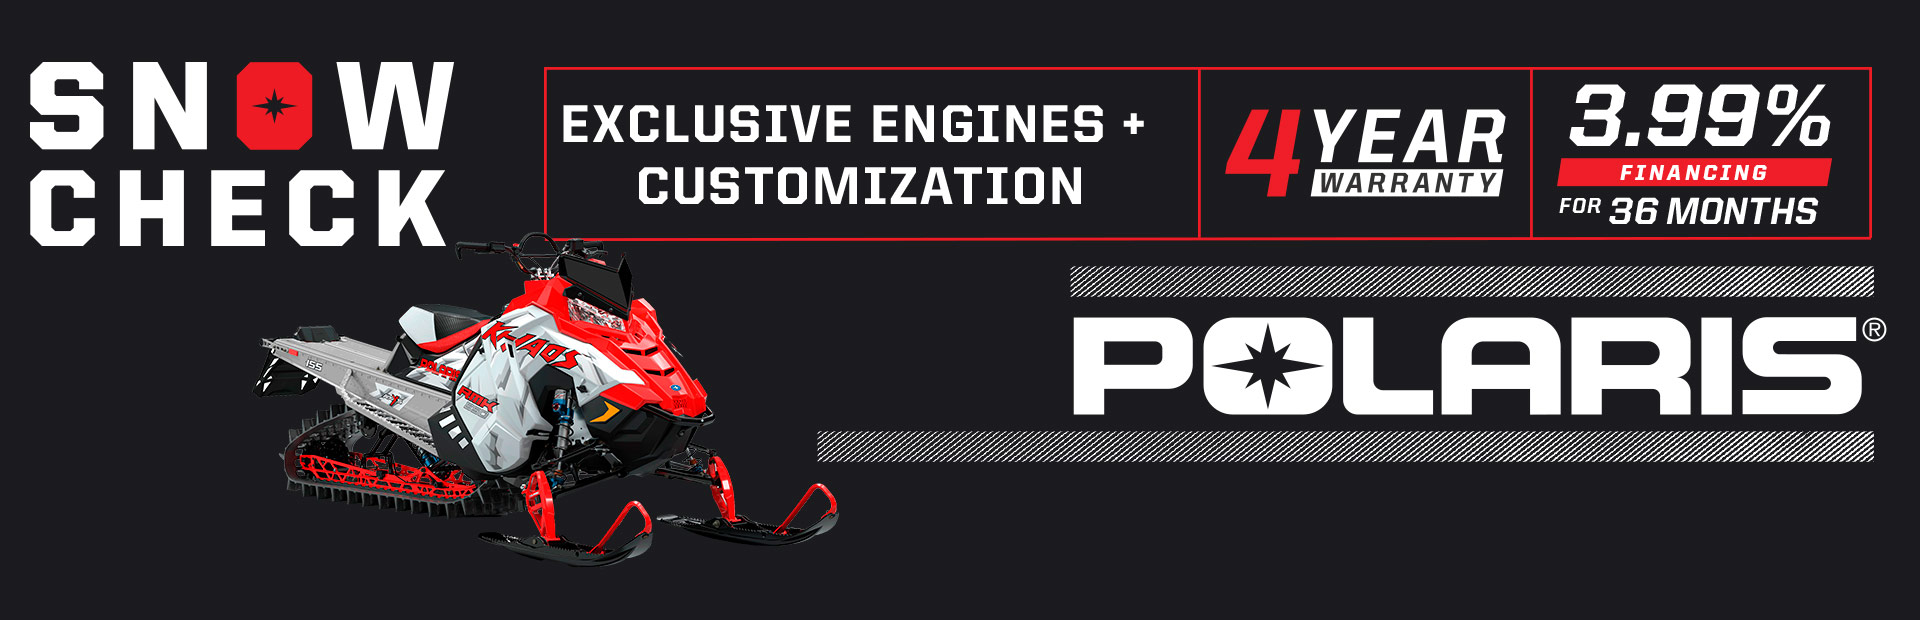 Polaris Industries: Snowcheck Exclusive Engines & Customization